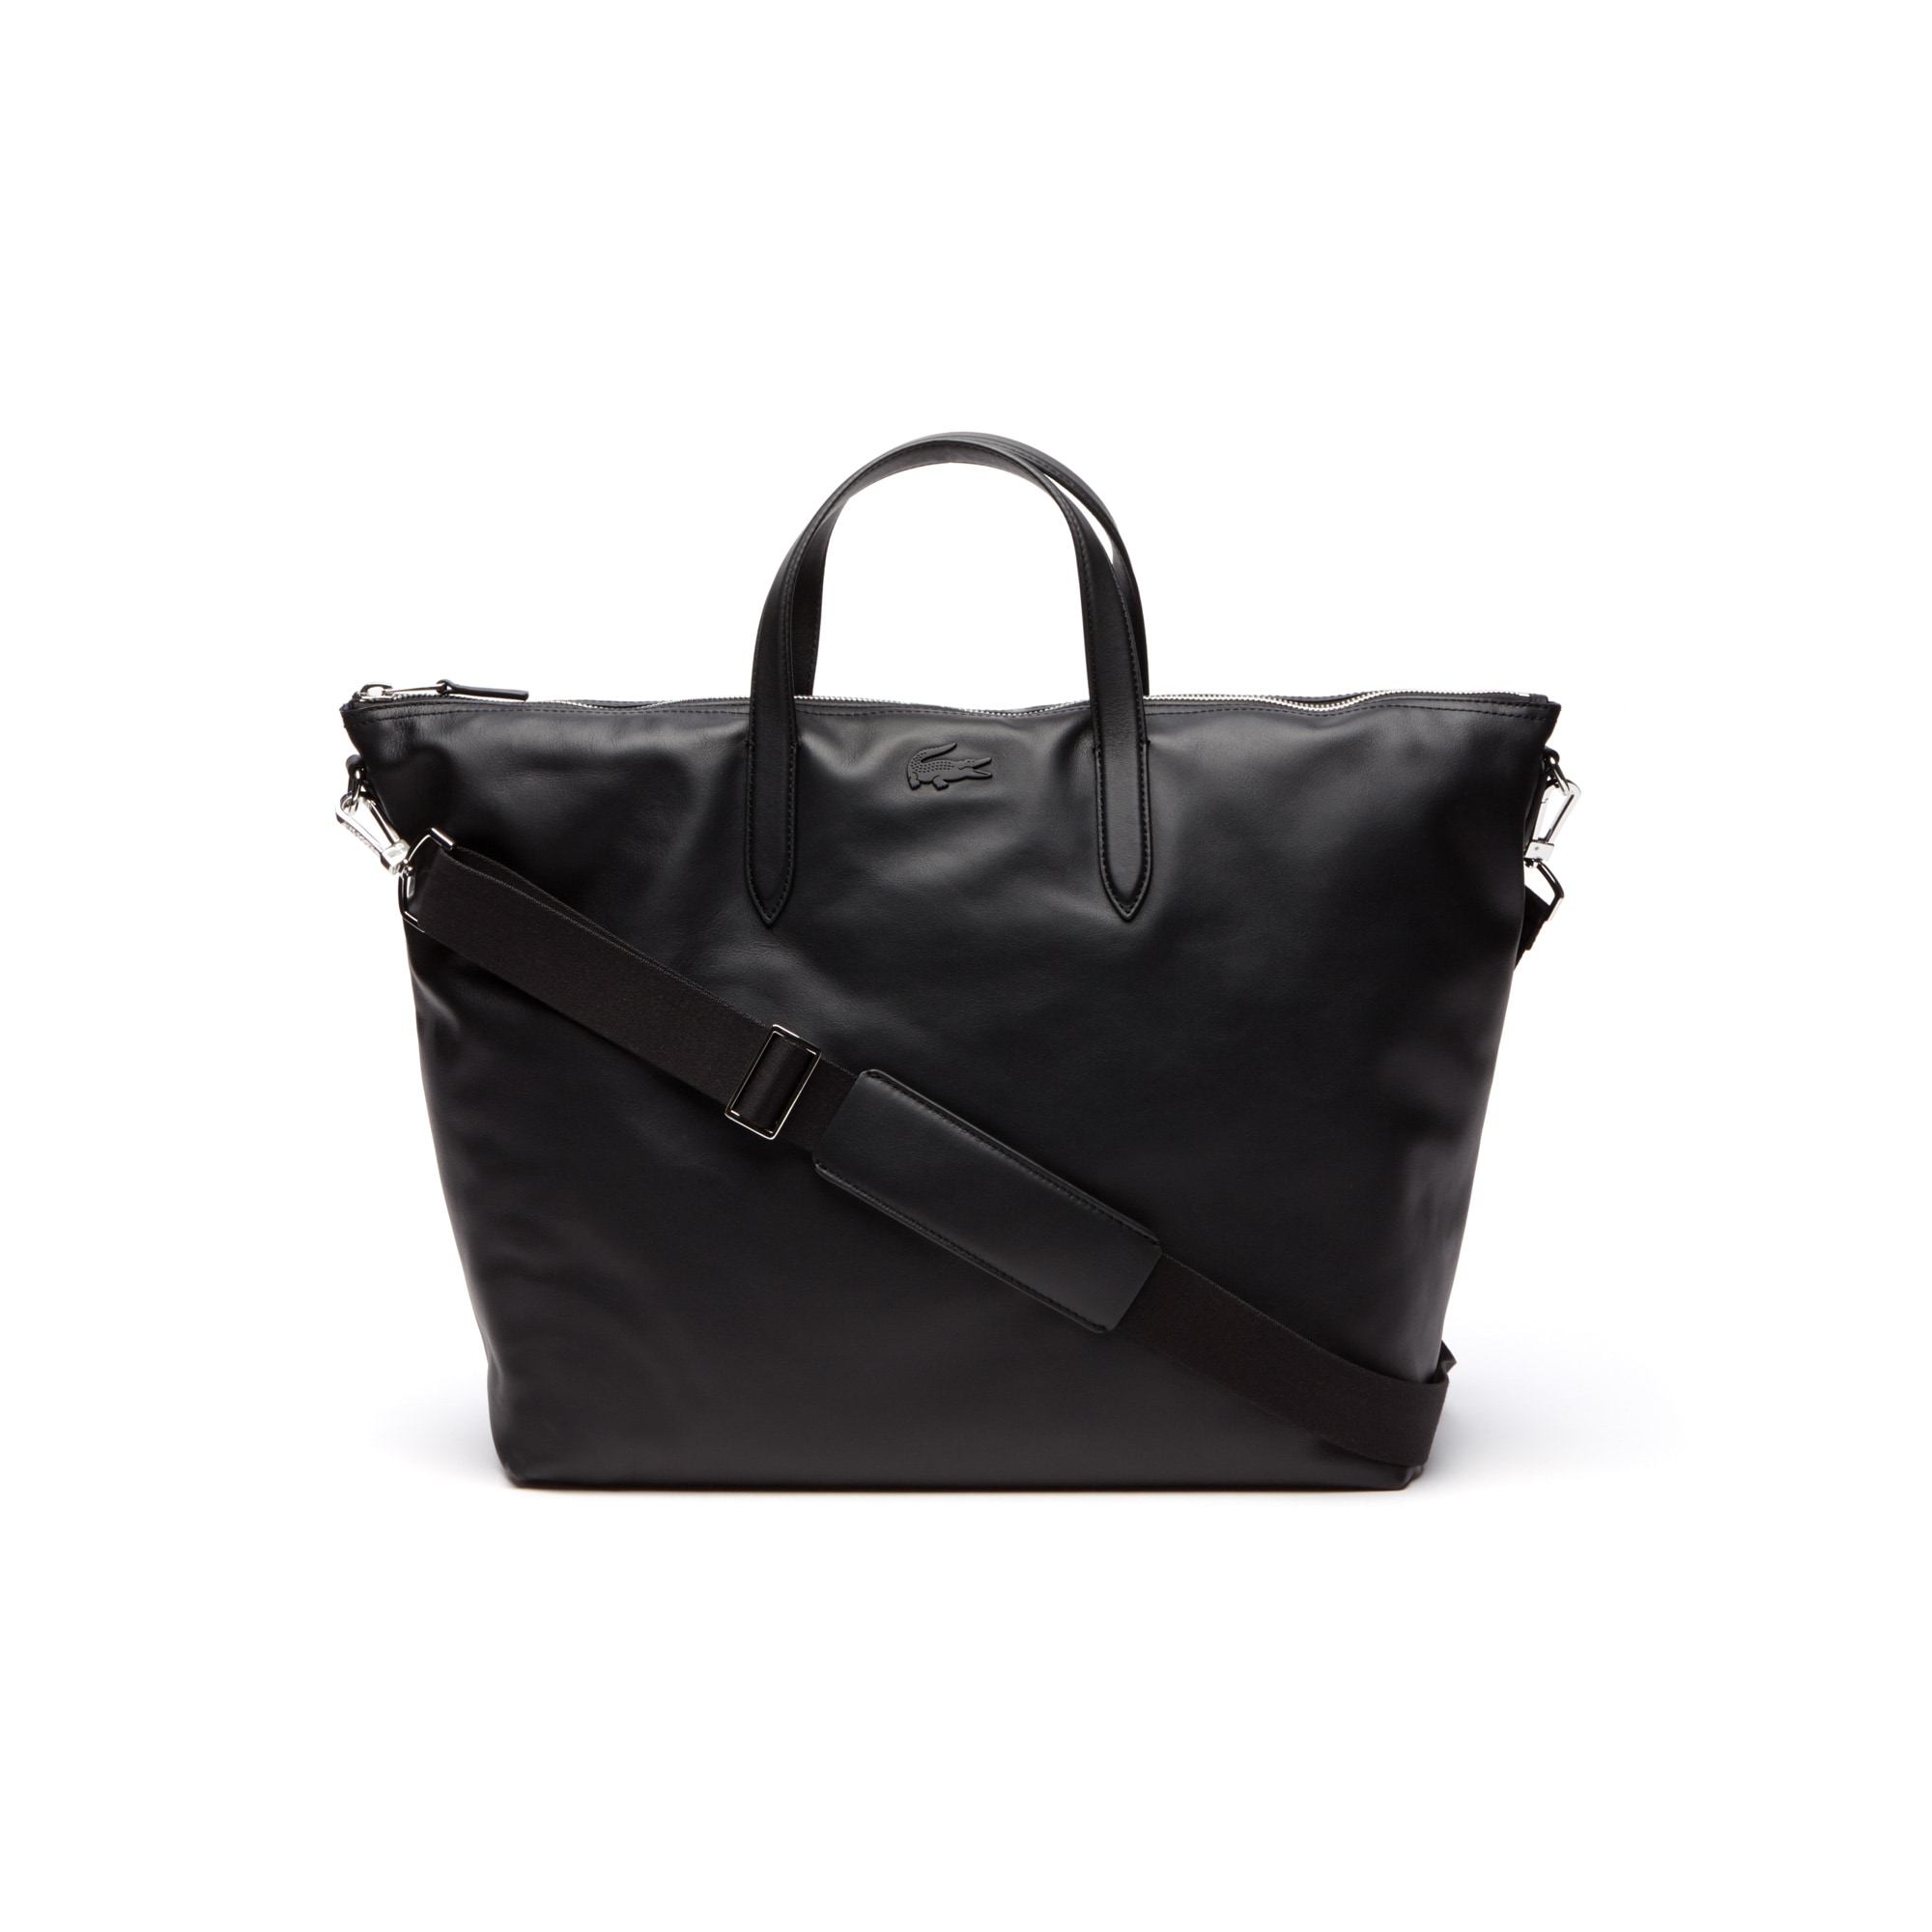 Herren L.12.12 BUSINESS Leder Tote Bag